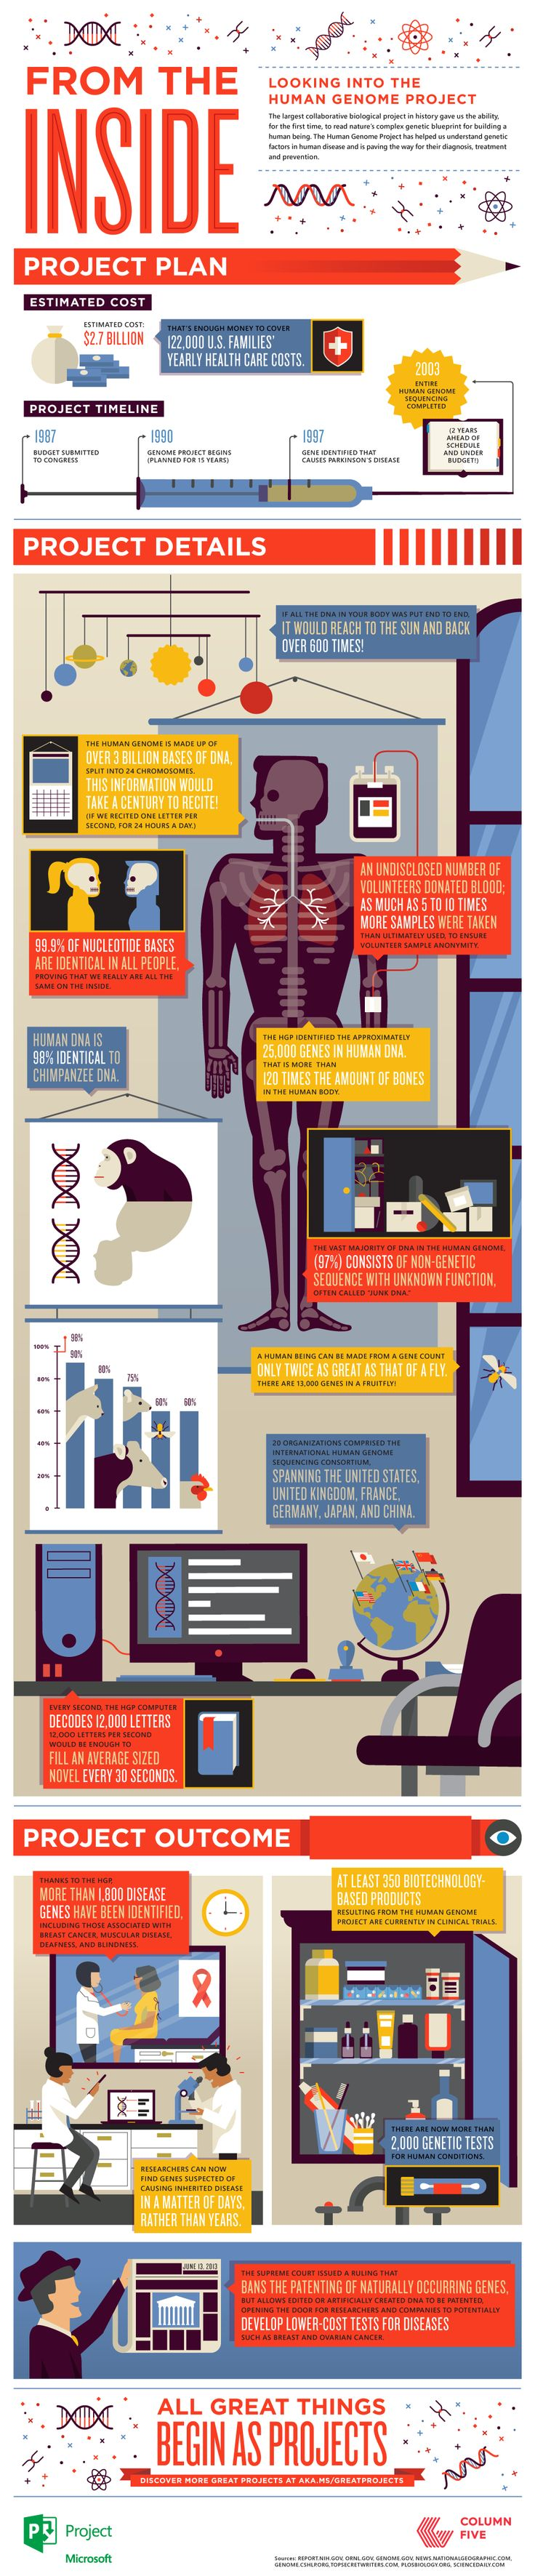 Human Genome Project infographic